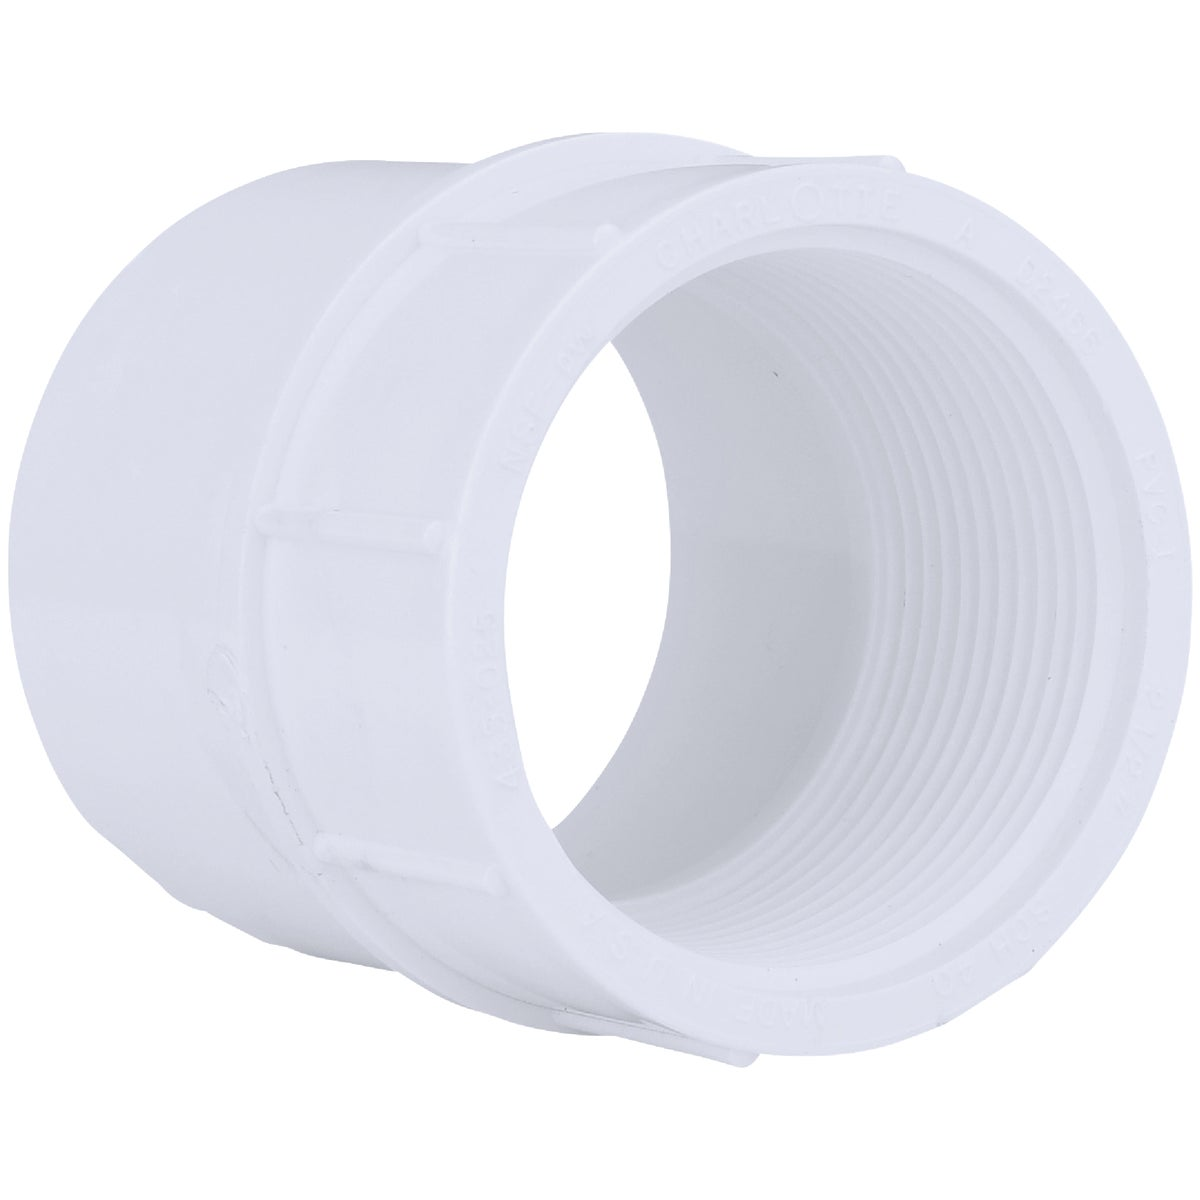 "2-1/2"" PVC SXFIP ADAPTER - 30390 by Genova Inc"